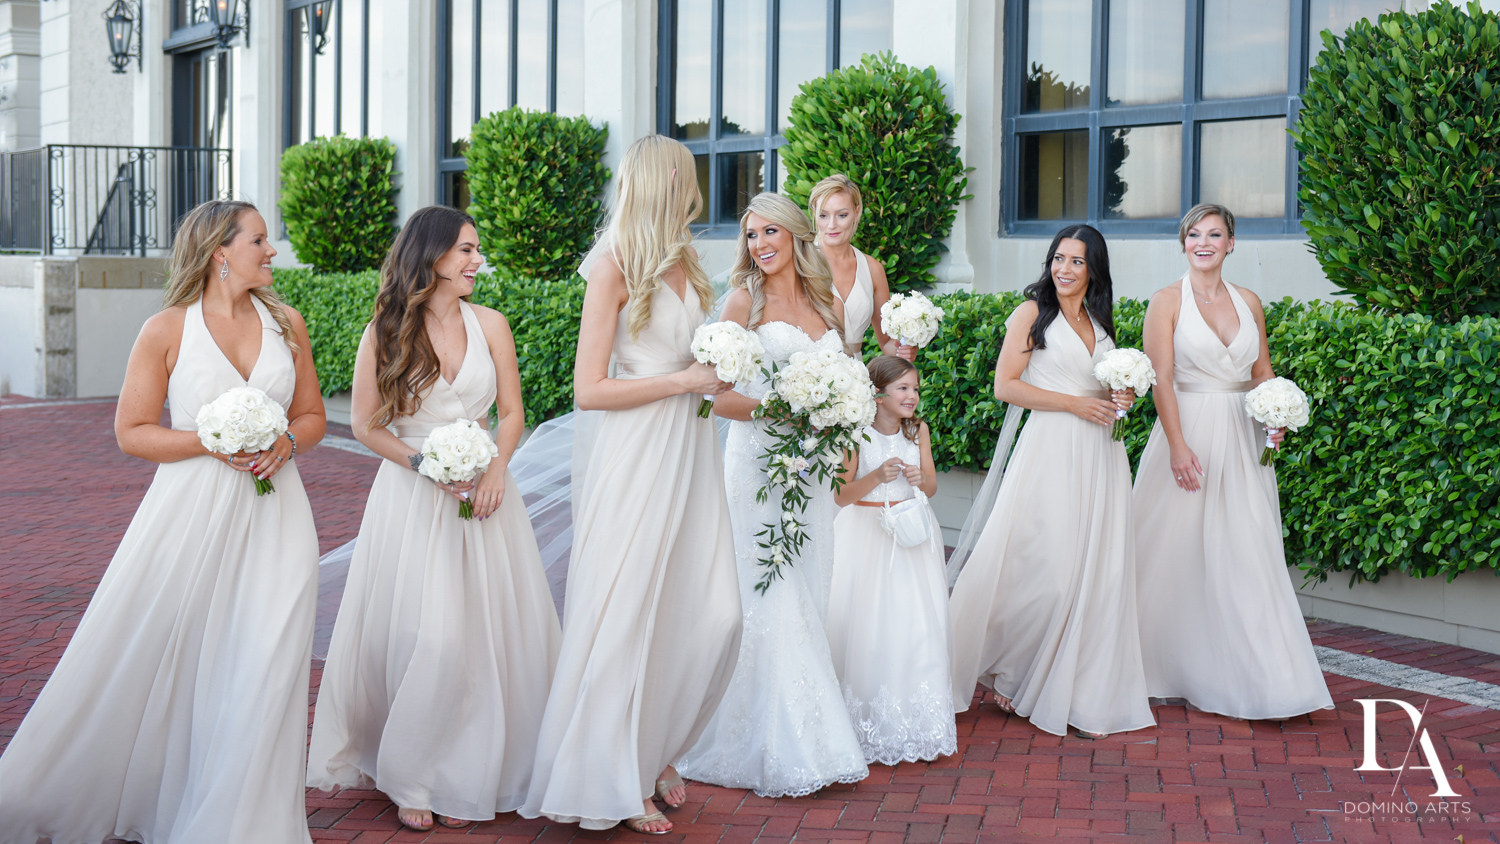 bridesmaids at Extravagant Wedding at The Breakers Palm Beach by Domino Arts Photography